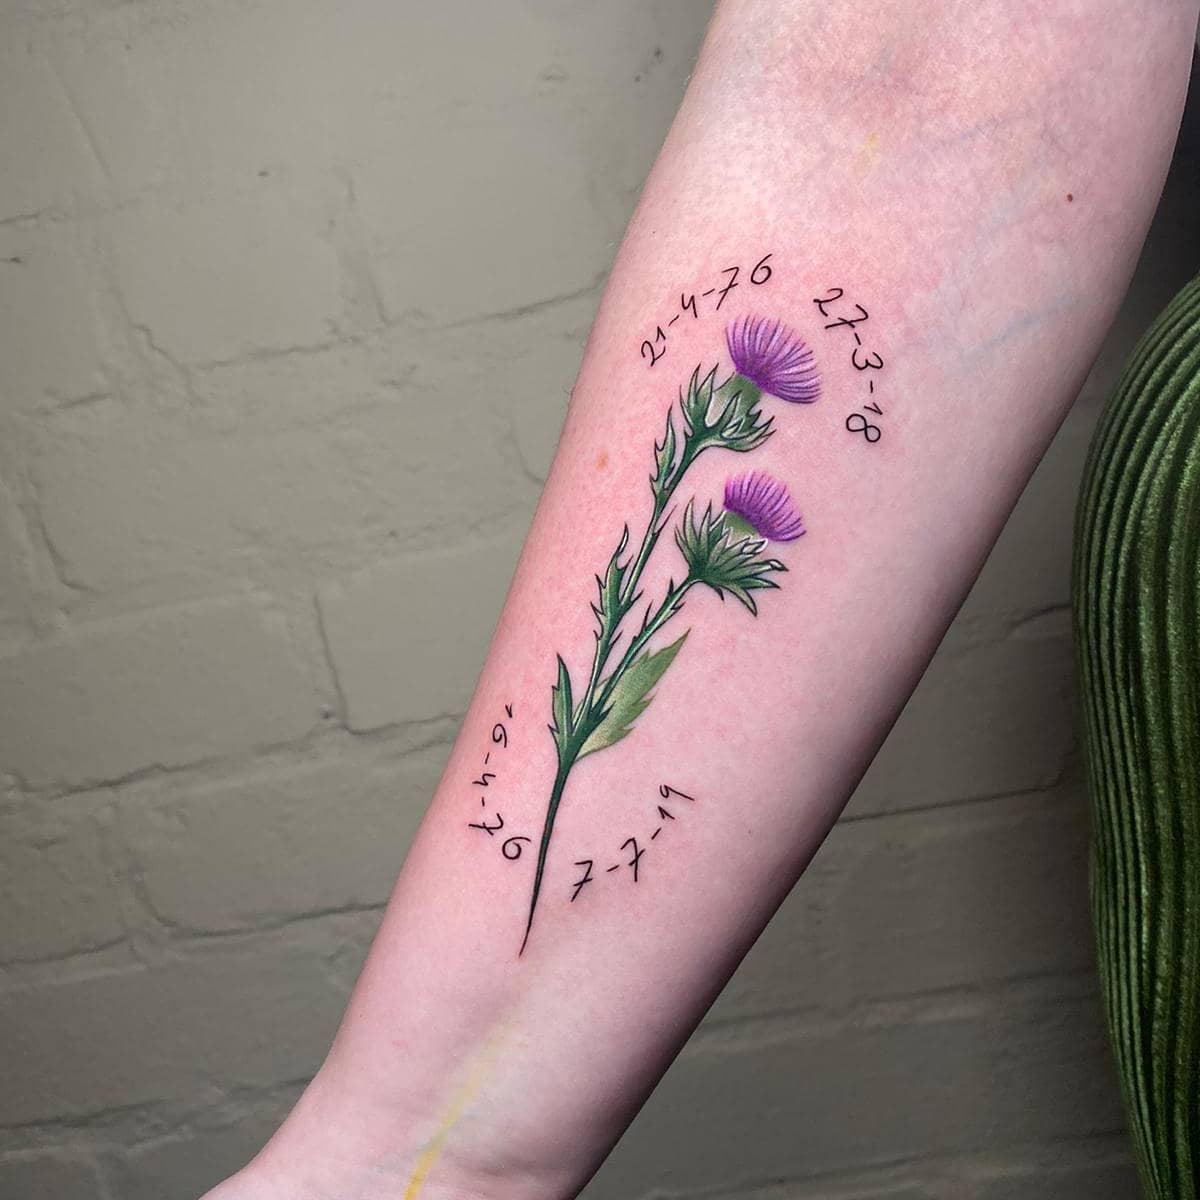 Sentimental thistles for gorgeous Georgia,  thanks so much for coming! Tattoo by the one and only Mamma Noemi noemi_tattoo